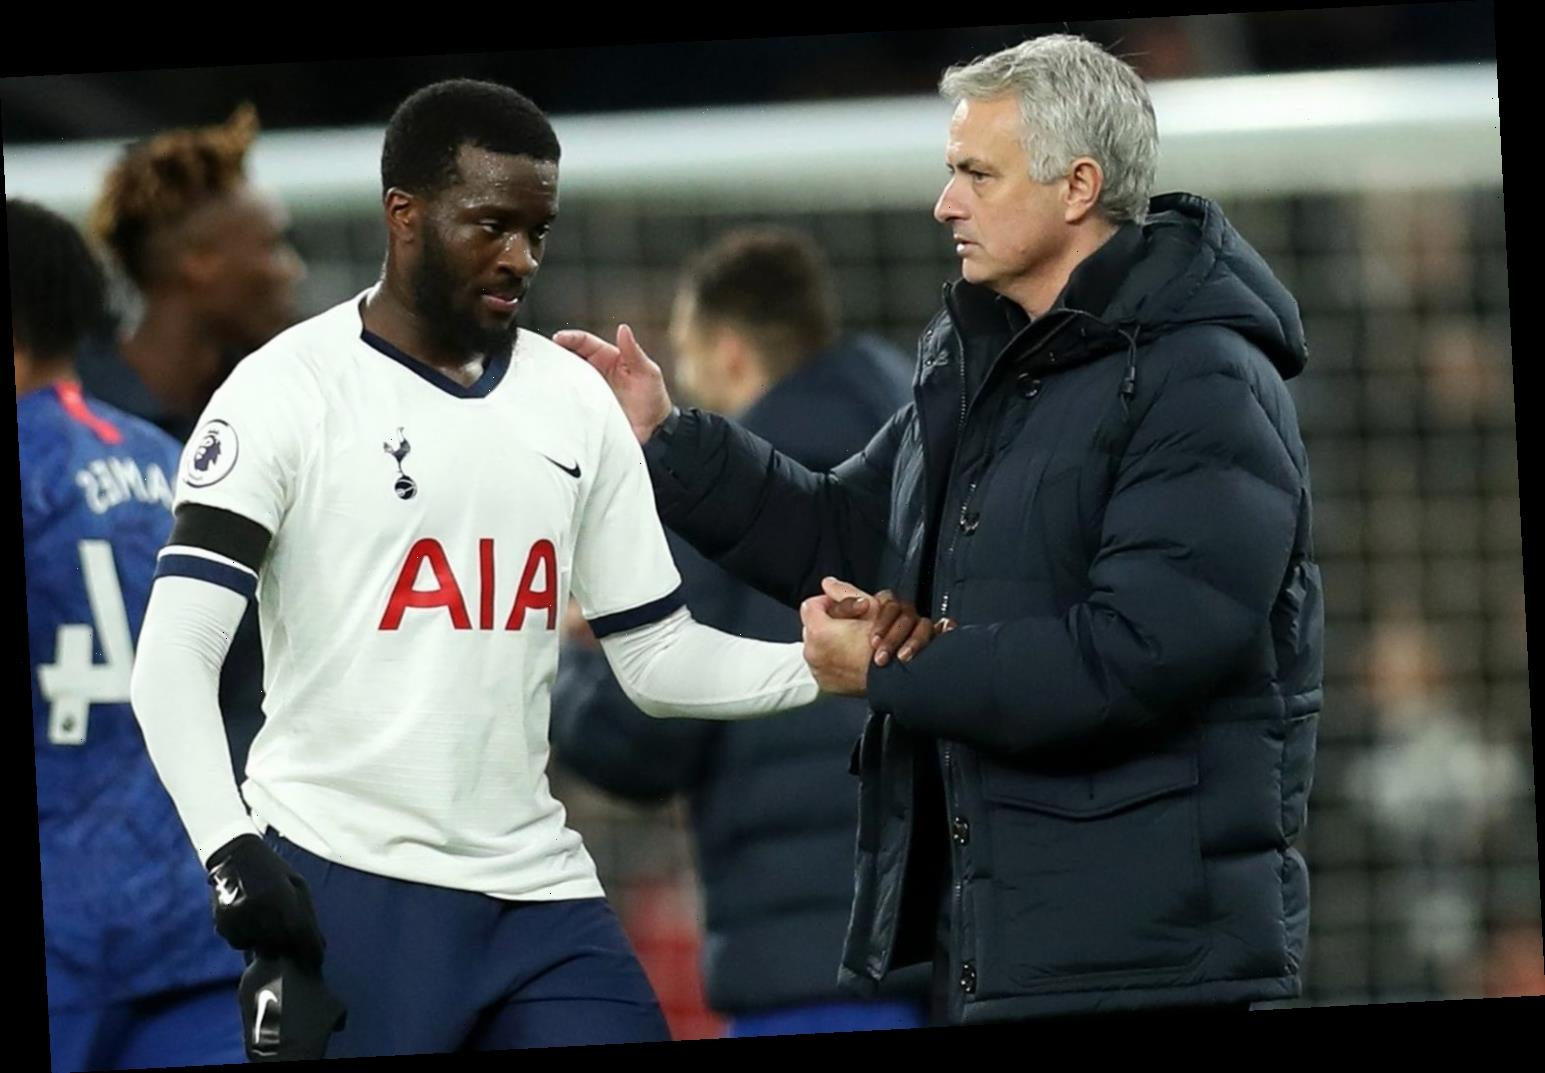 Tanguy Ndombele 'tells Jose Mourinho he will never play for him again at Tottenham after another bust-up' – The Sun